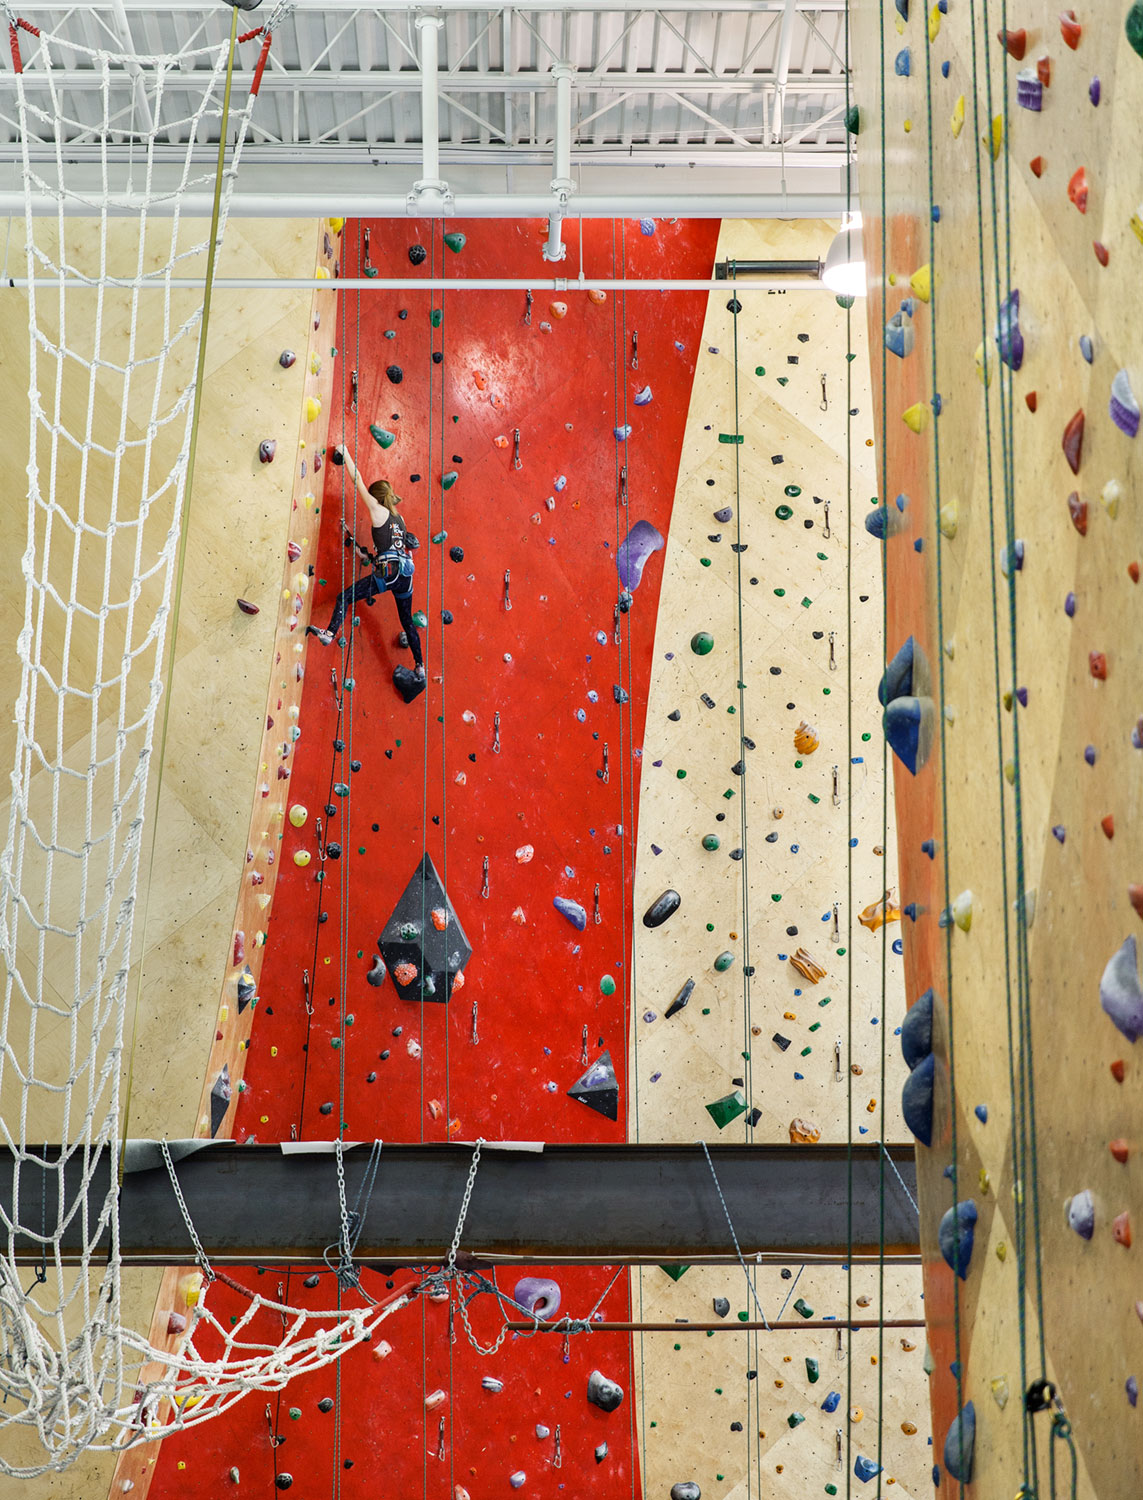 160607_BrooklynBoulders_272.jpg